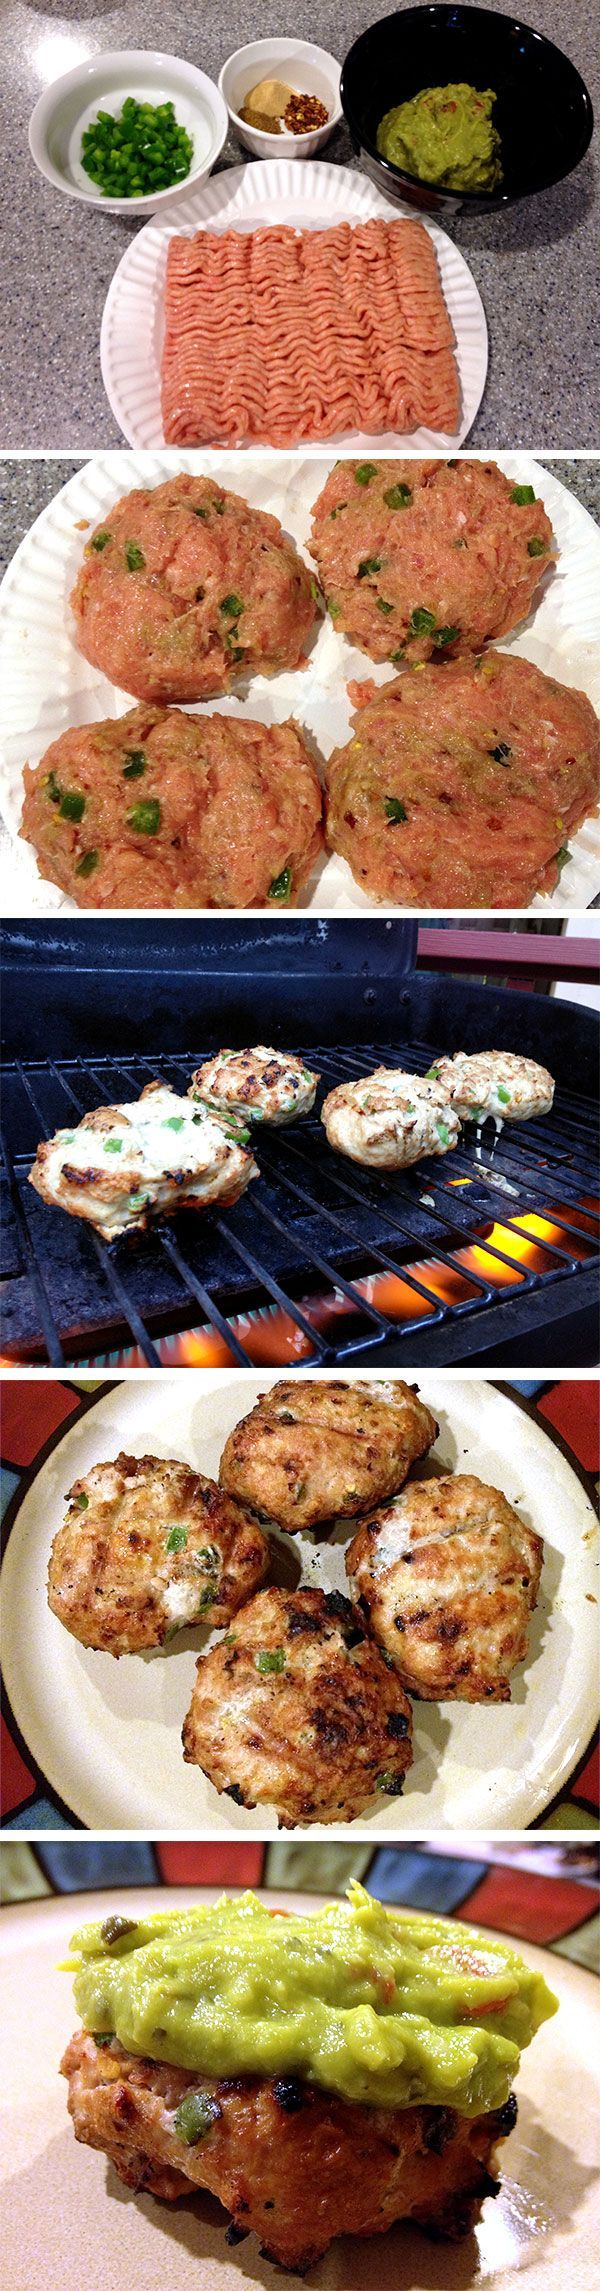 "Spicy Chicken Burgers: 1# gd chicken,  1/2-1 jalapeno, 1/2 tsp garlic pwd, 1/2 tsp gd cumin, 1/2 tsp red pepper flakes (or less!!); grill ~10"" med-high heat; top w/ guacamole"